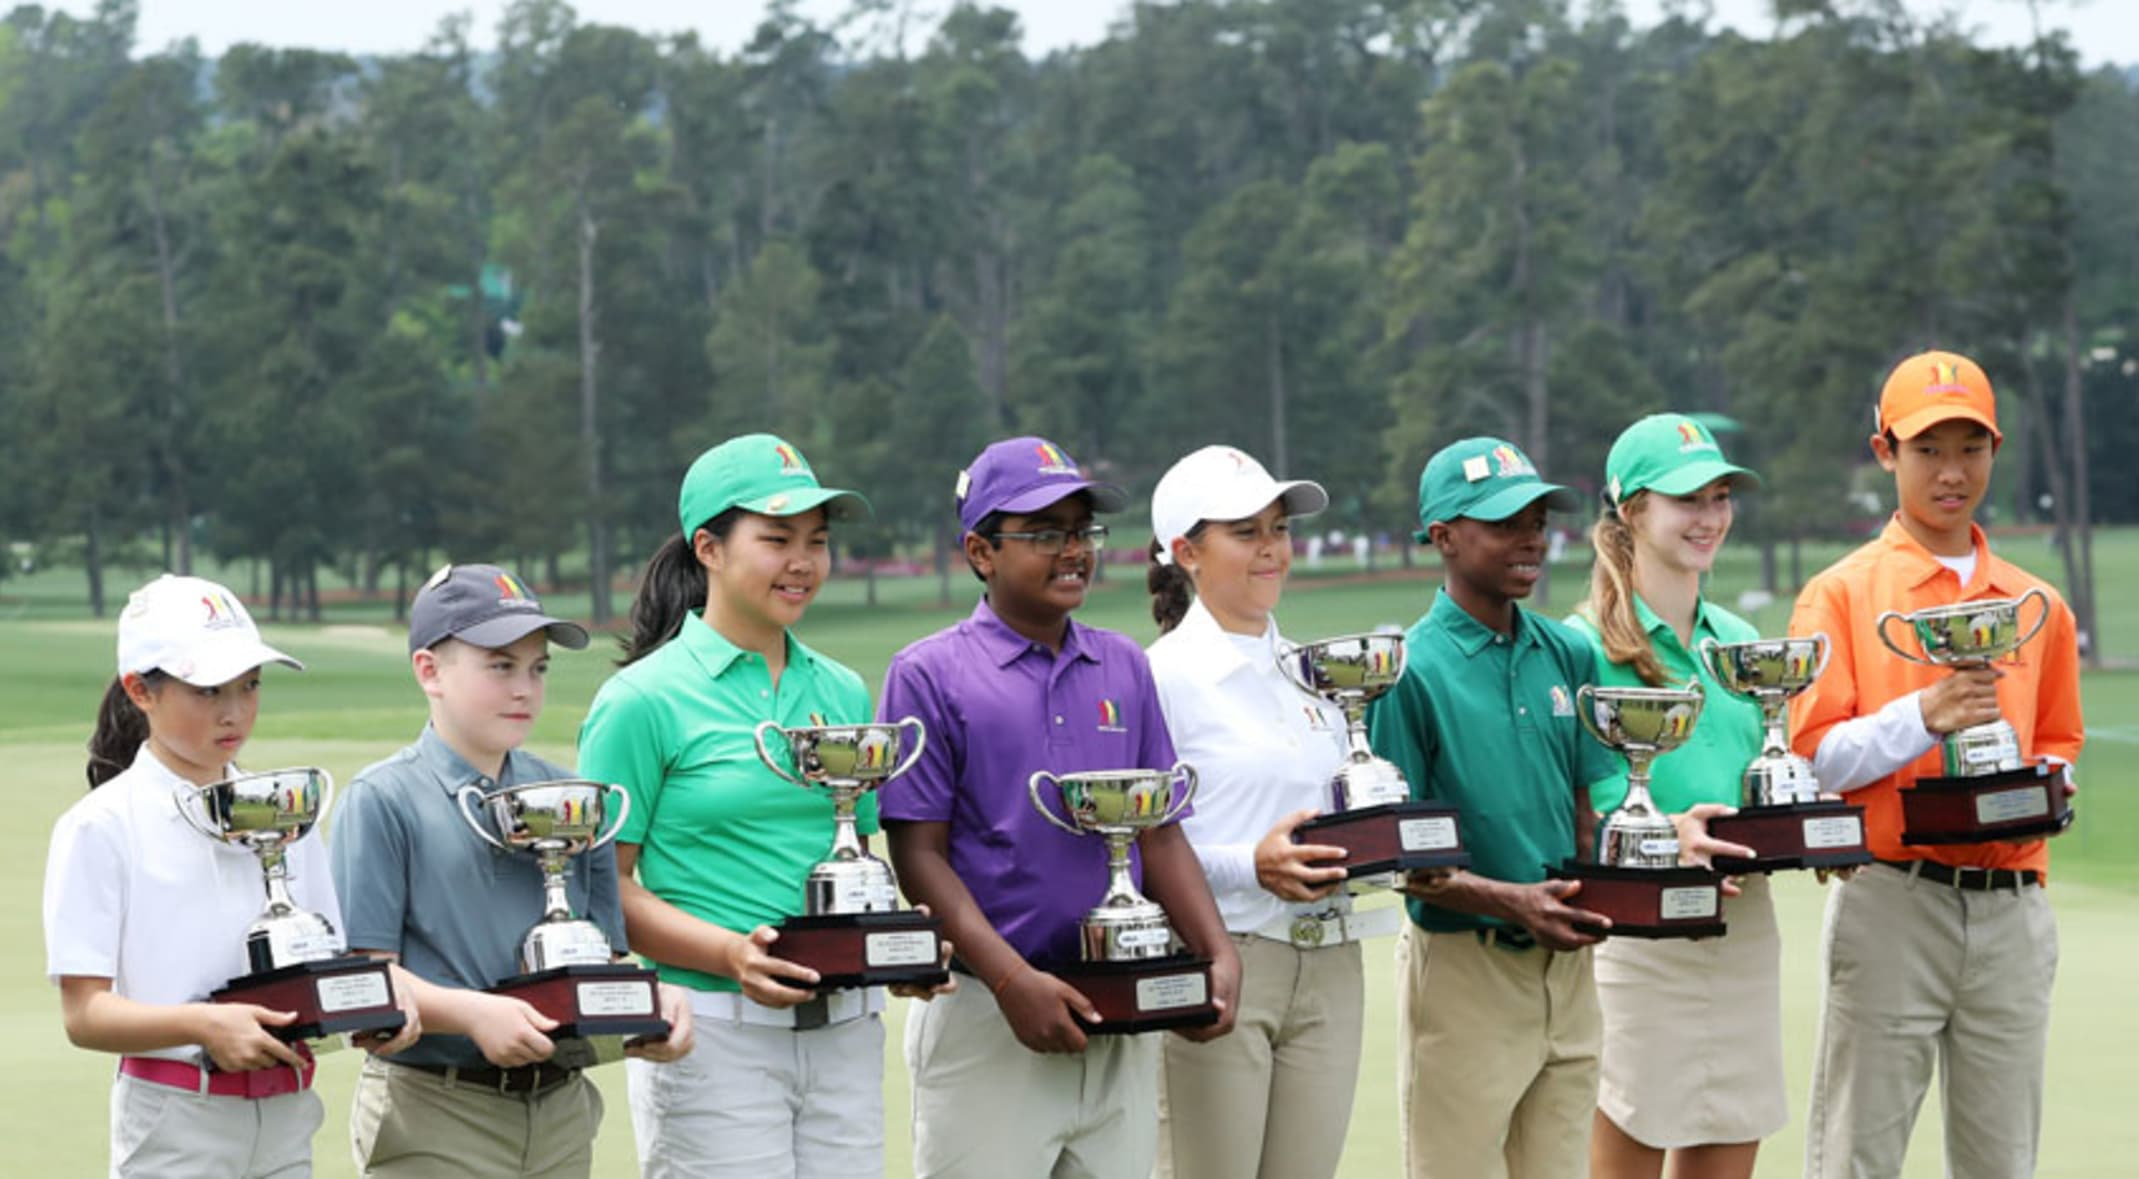 36b7244f7b4c Overall winners for each division celebrate with their trophies at Augusta National  Golf Club. (